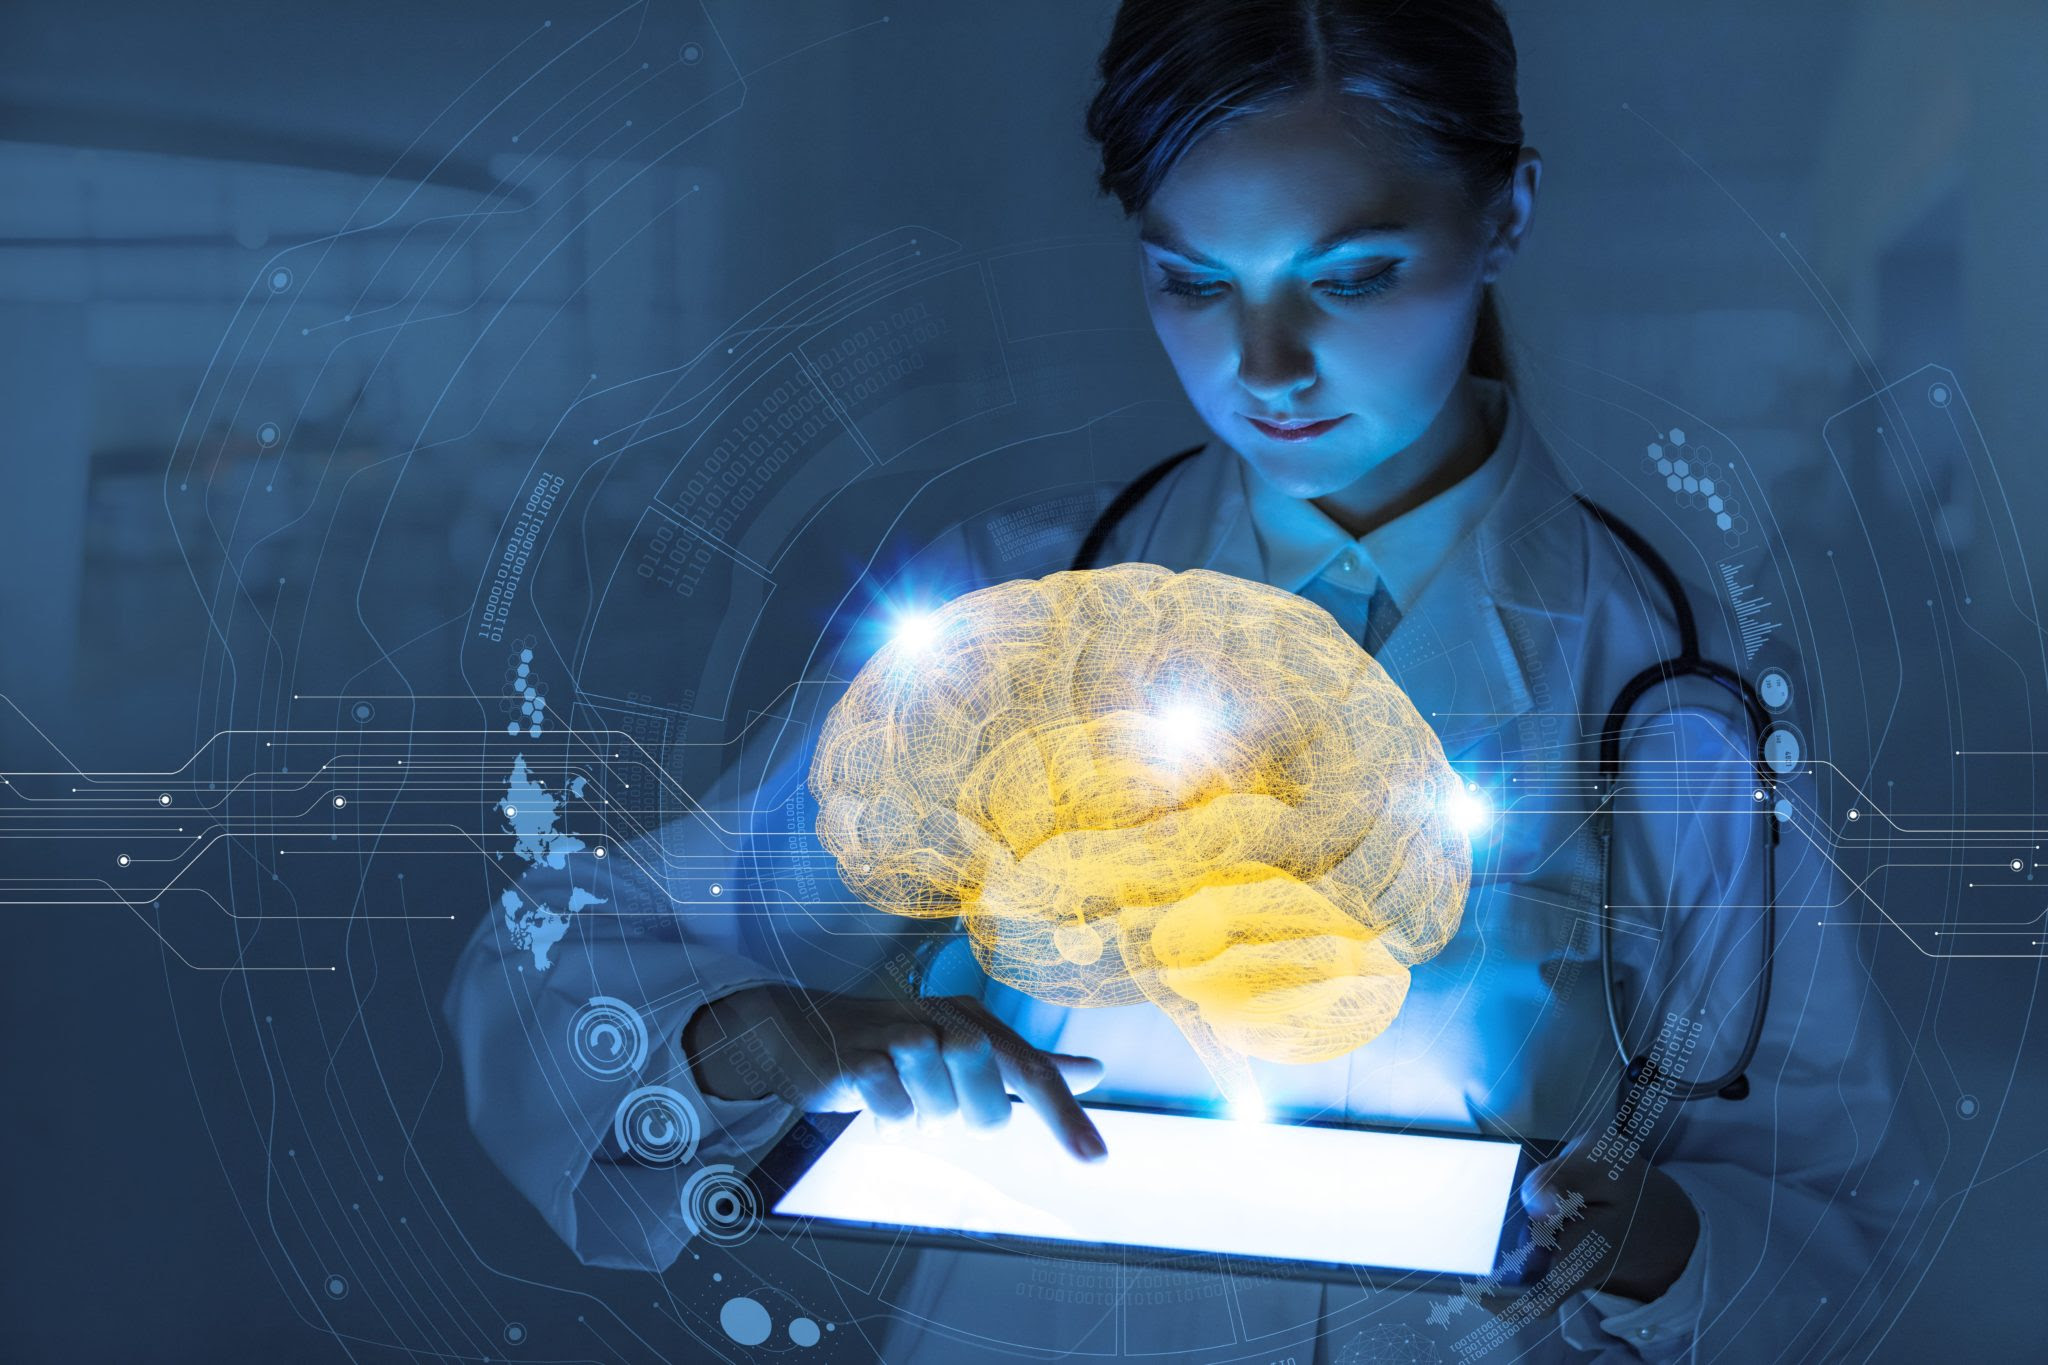 Artificial Intelligence Applications - AI in Health Care